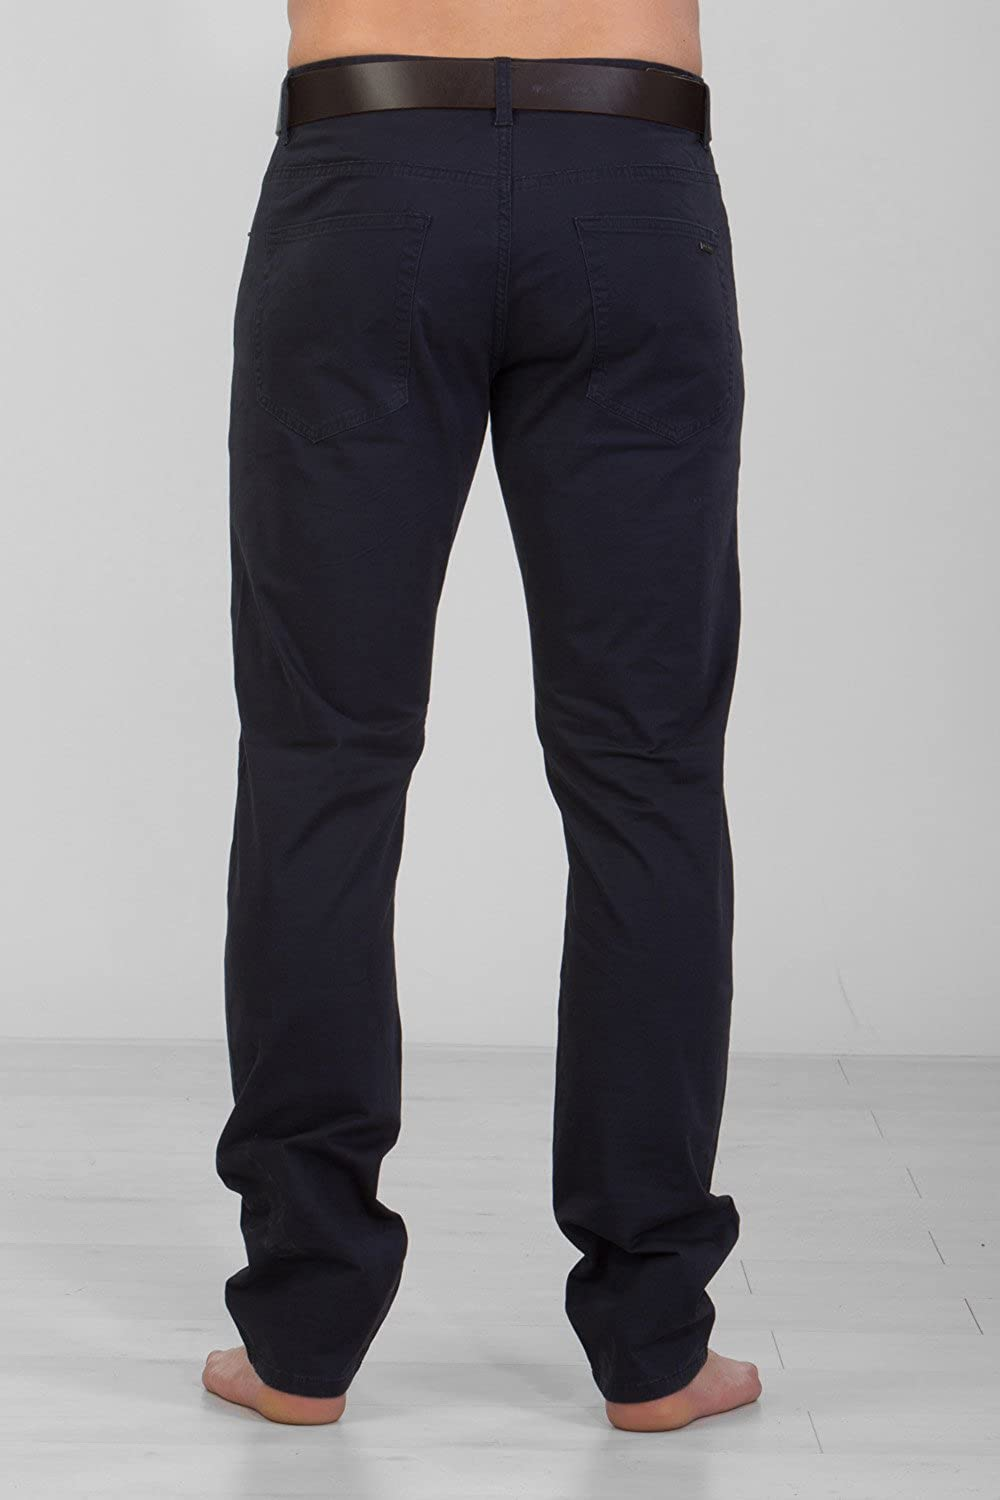 Gear Mens Stretch Slim Fit Chinos JSM248 Navy by